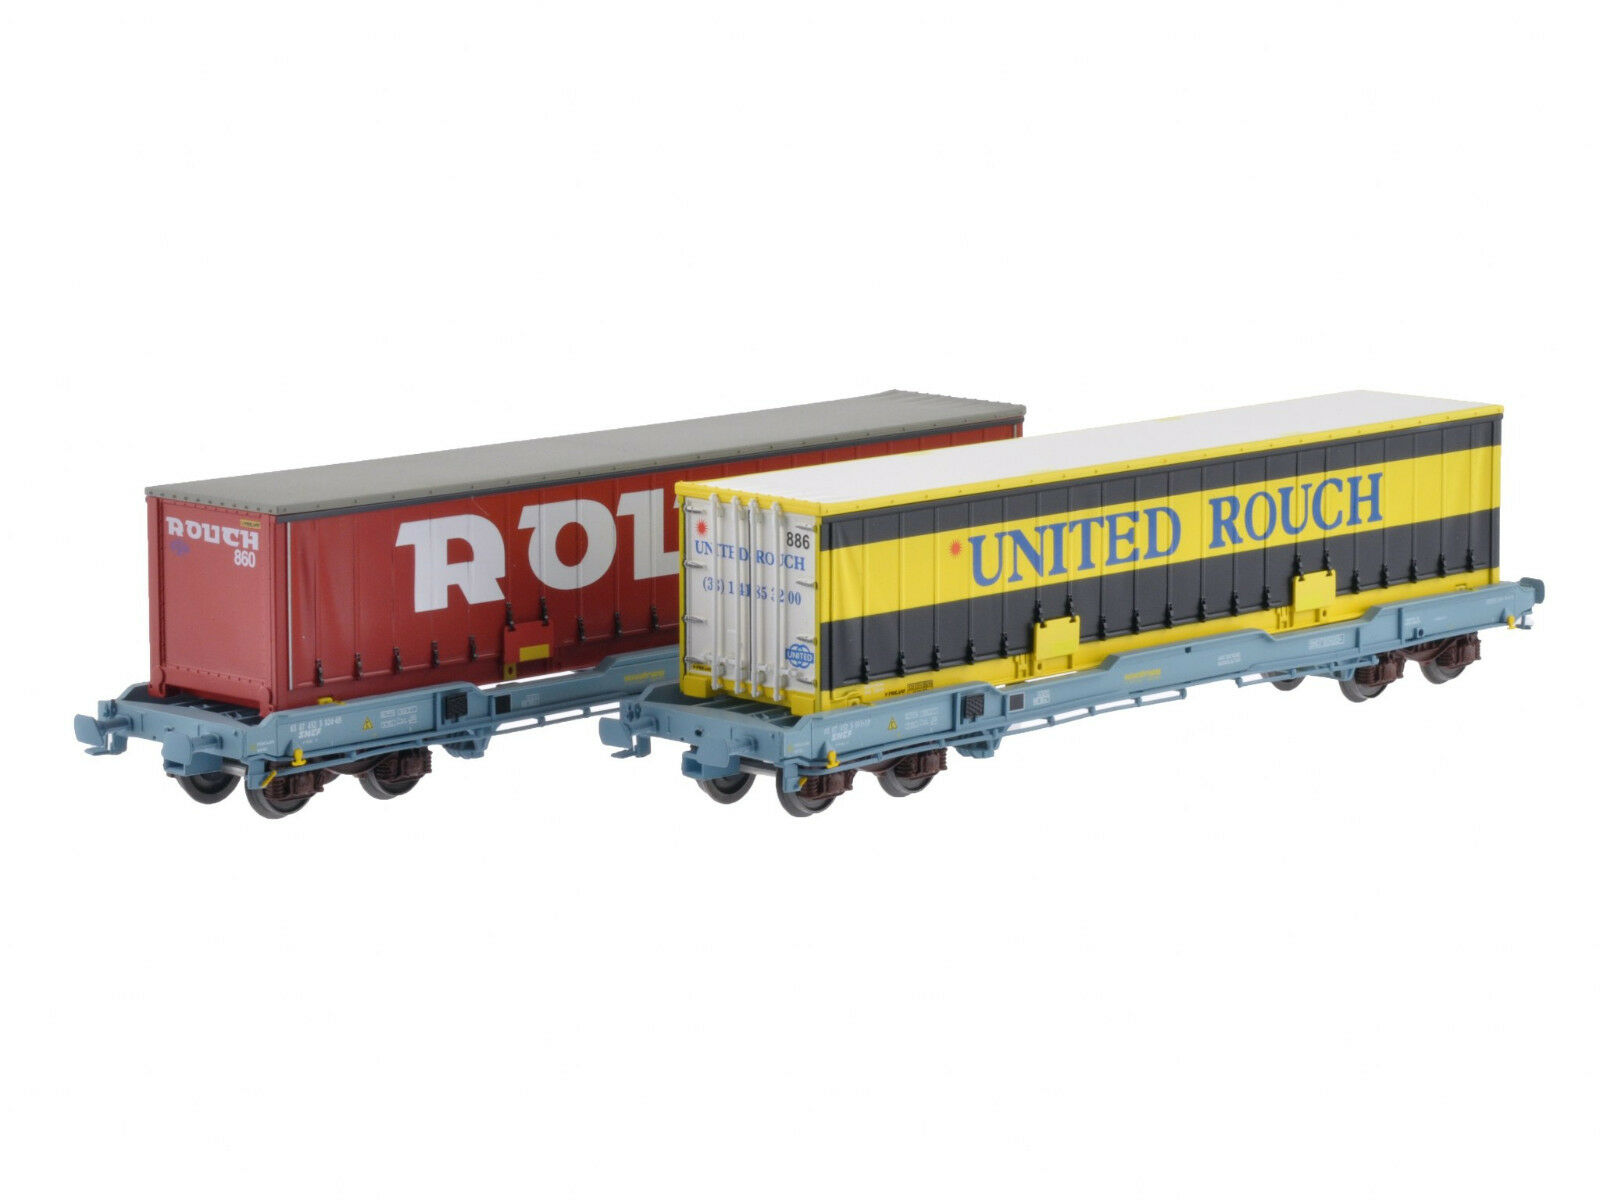 LS Models 30314 Set 2 SNCF containertragwg KC Nova Trans blaugr 40' Rouch ep5 NUOVO